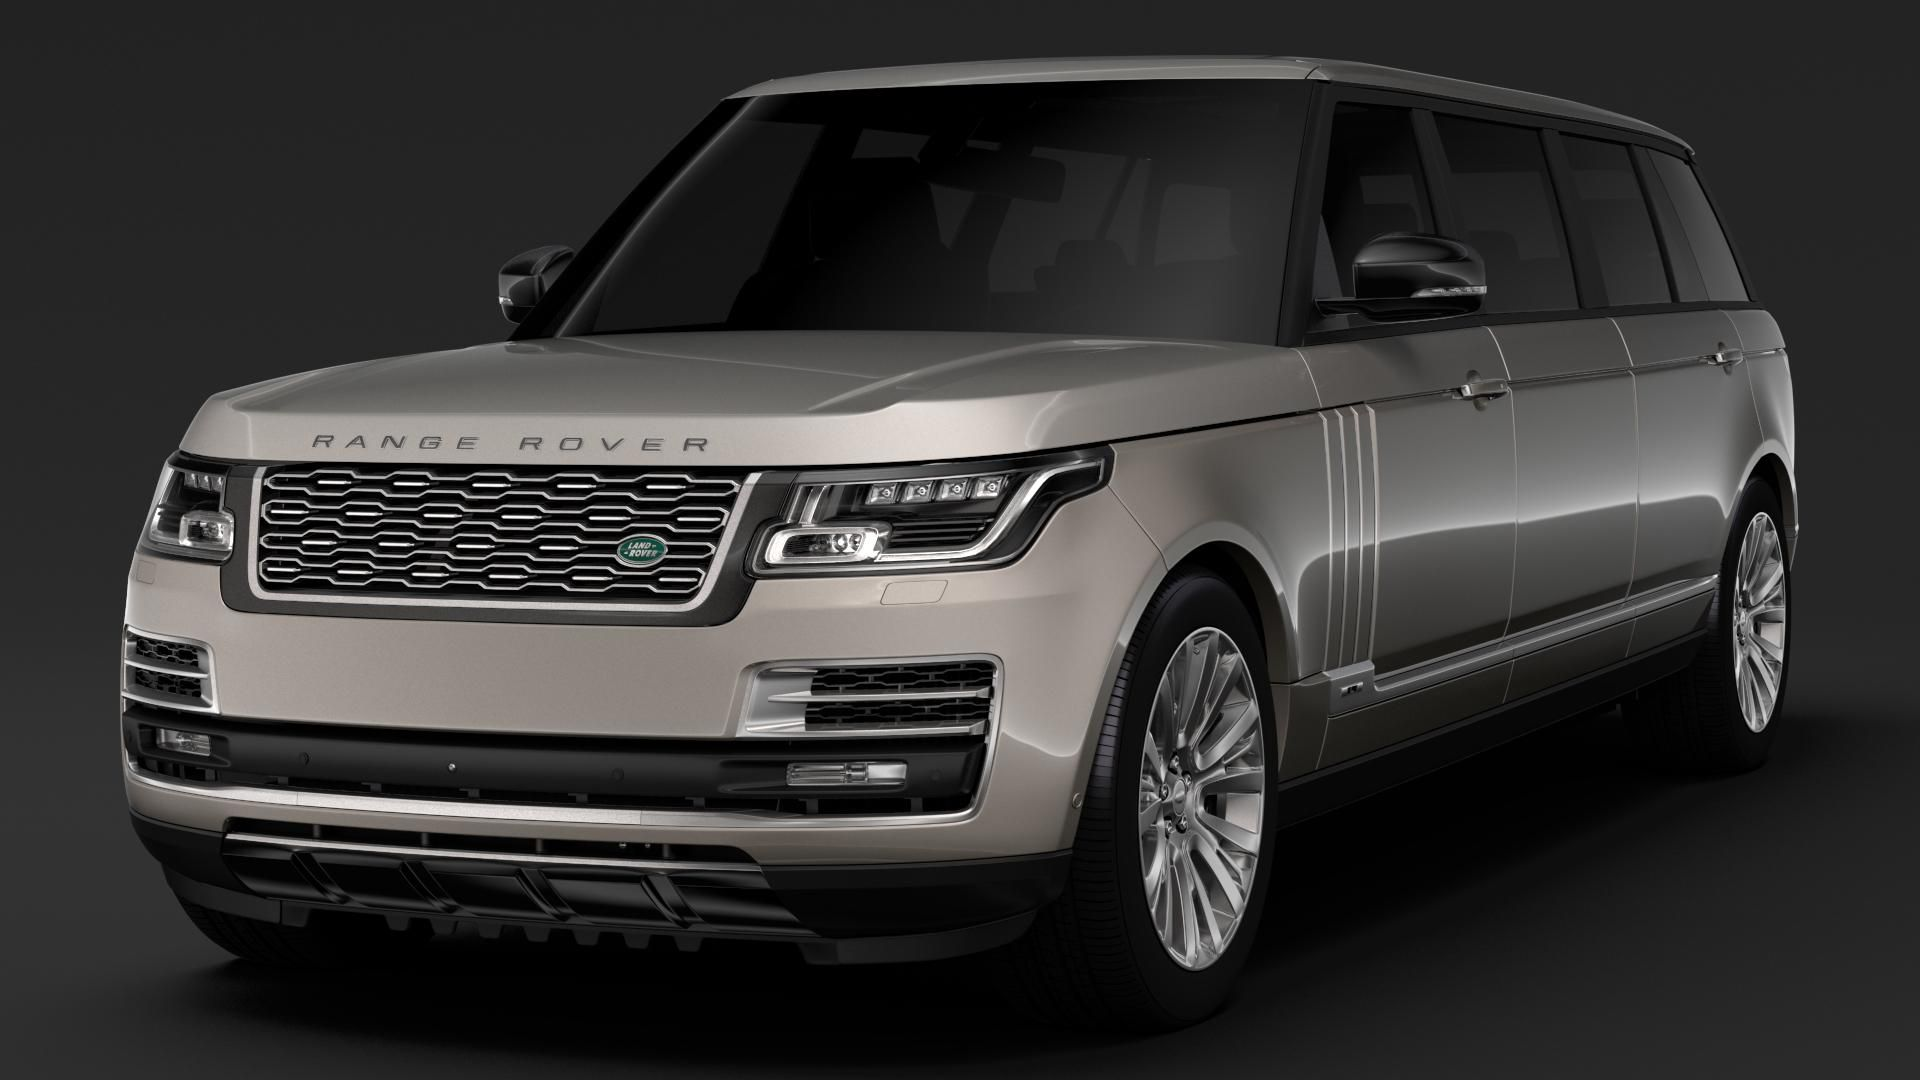 Range Rover Svautobiography Limo L405 2019 3d Model Ad Svautobiography Rover Range Limo Range Rover Limo Range Rover Supercharged